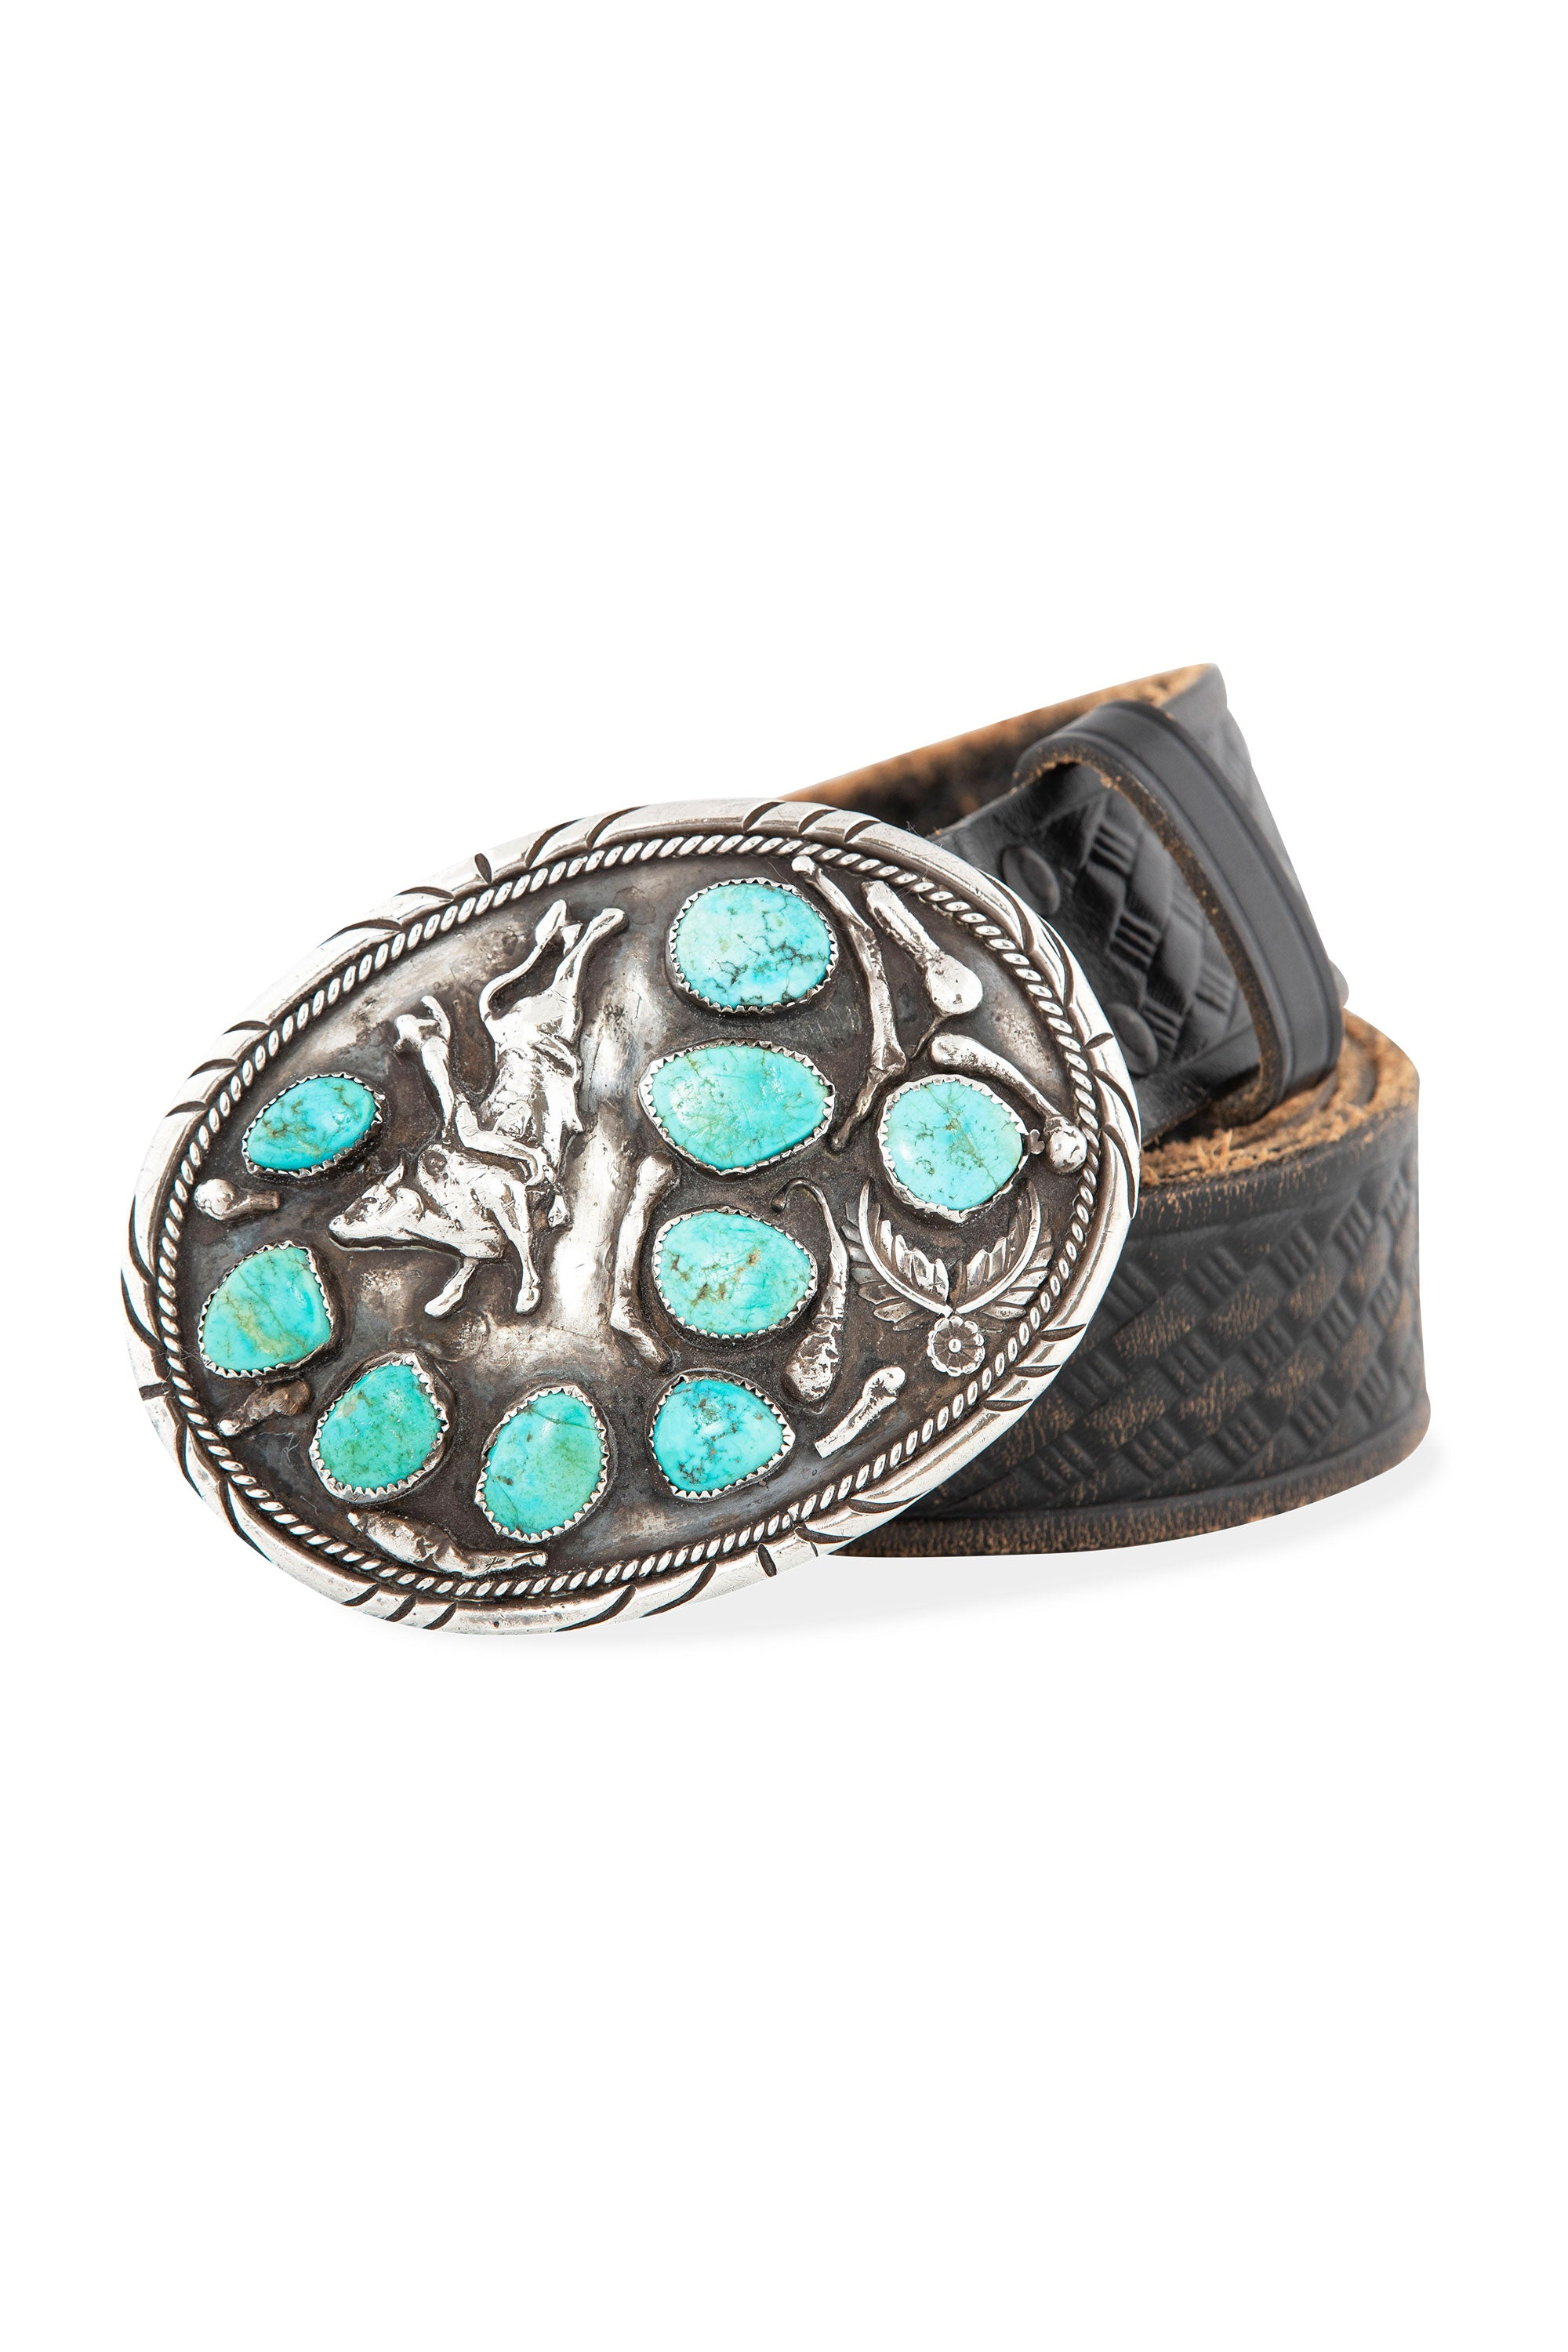 Belt, Buckle, Turquoise, Western Tooled Leather Strap, Vintage, 677